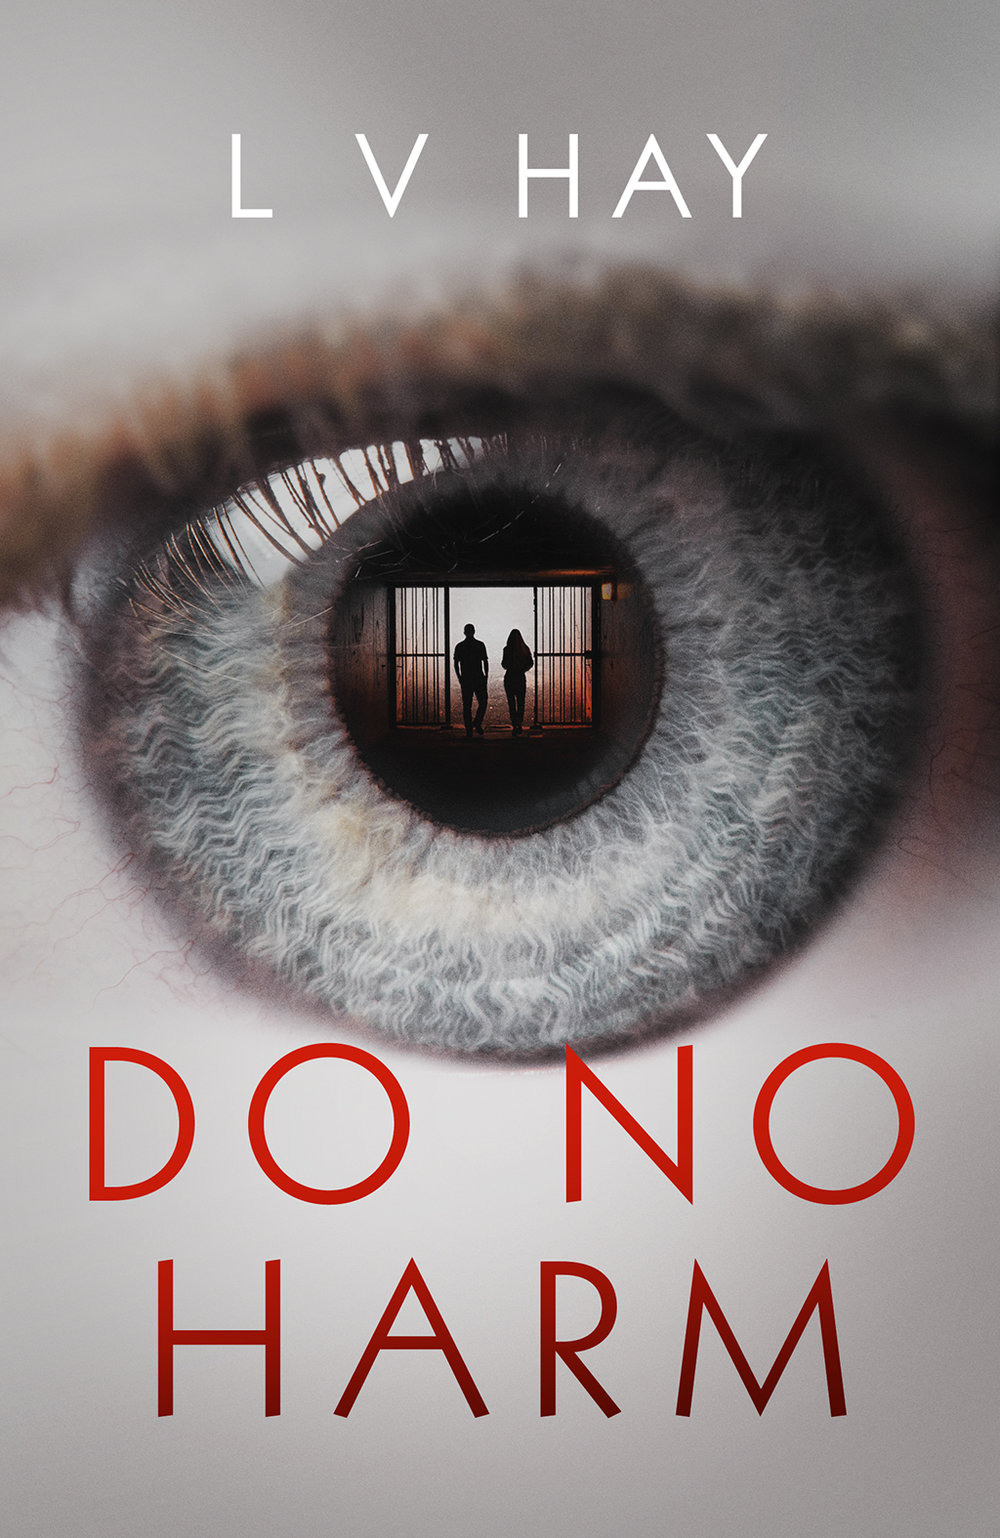 DO NO HARM  Thriller, 300 pages Orenda, July 2018   FATAL ATTRACTION for the modern age. Divorced father Maxwell will stop at nothing to see the return of his ex-wife Lily and 12-year-old Denny, when Lily remarries, even if it means murder…